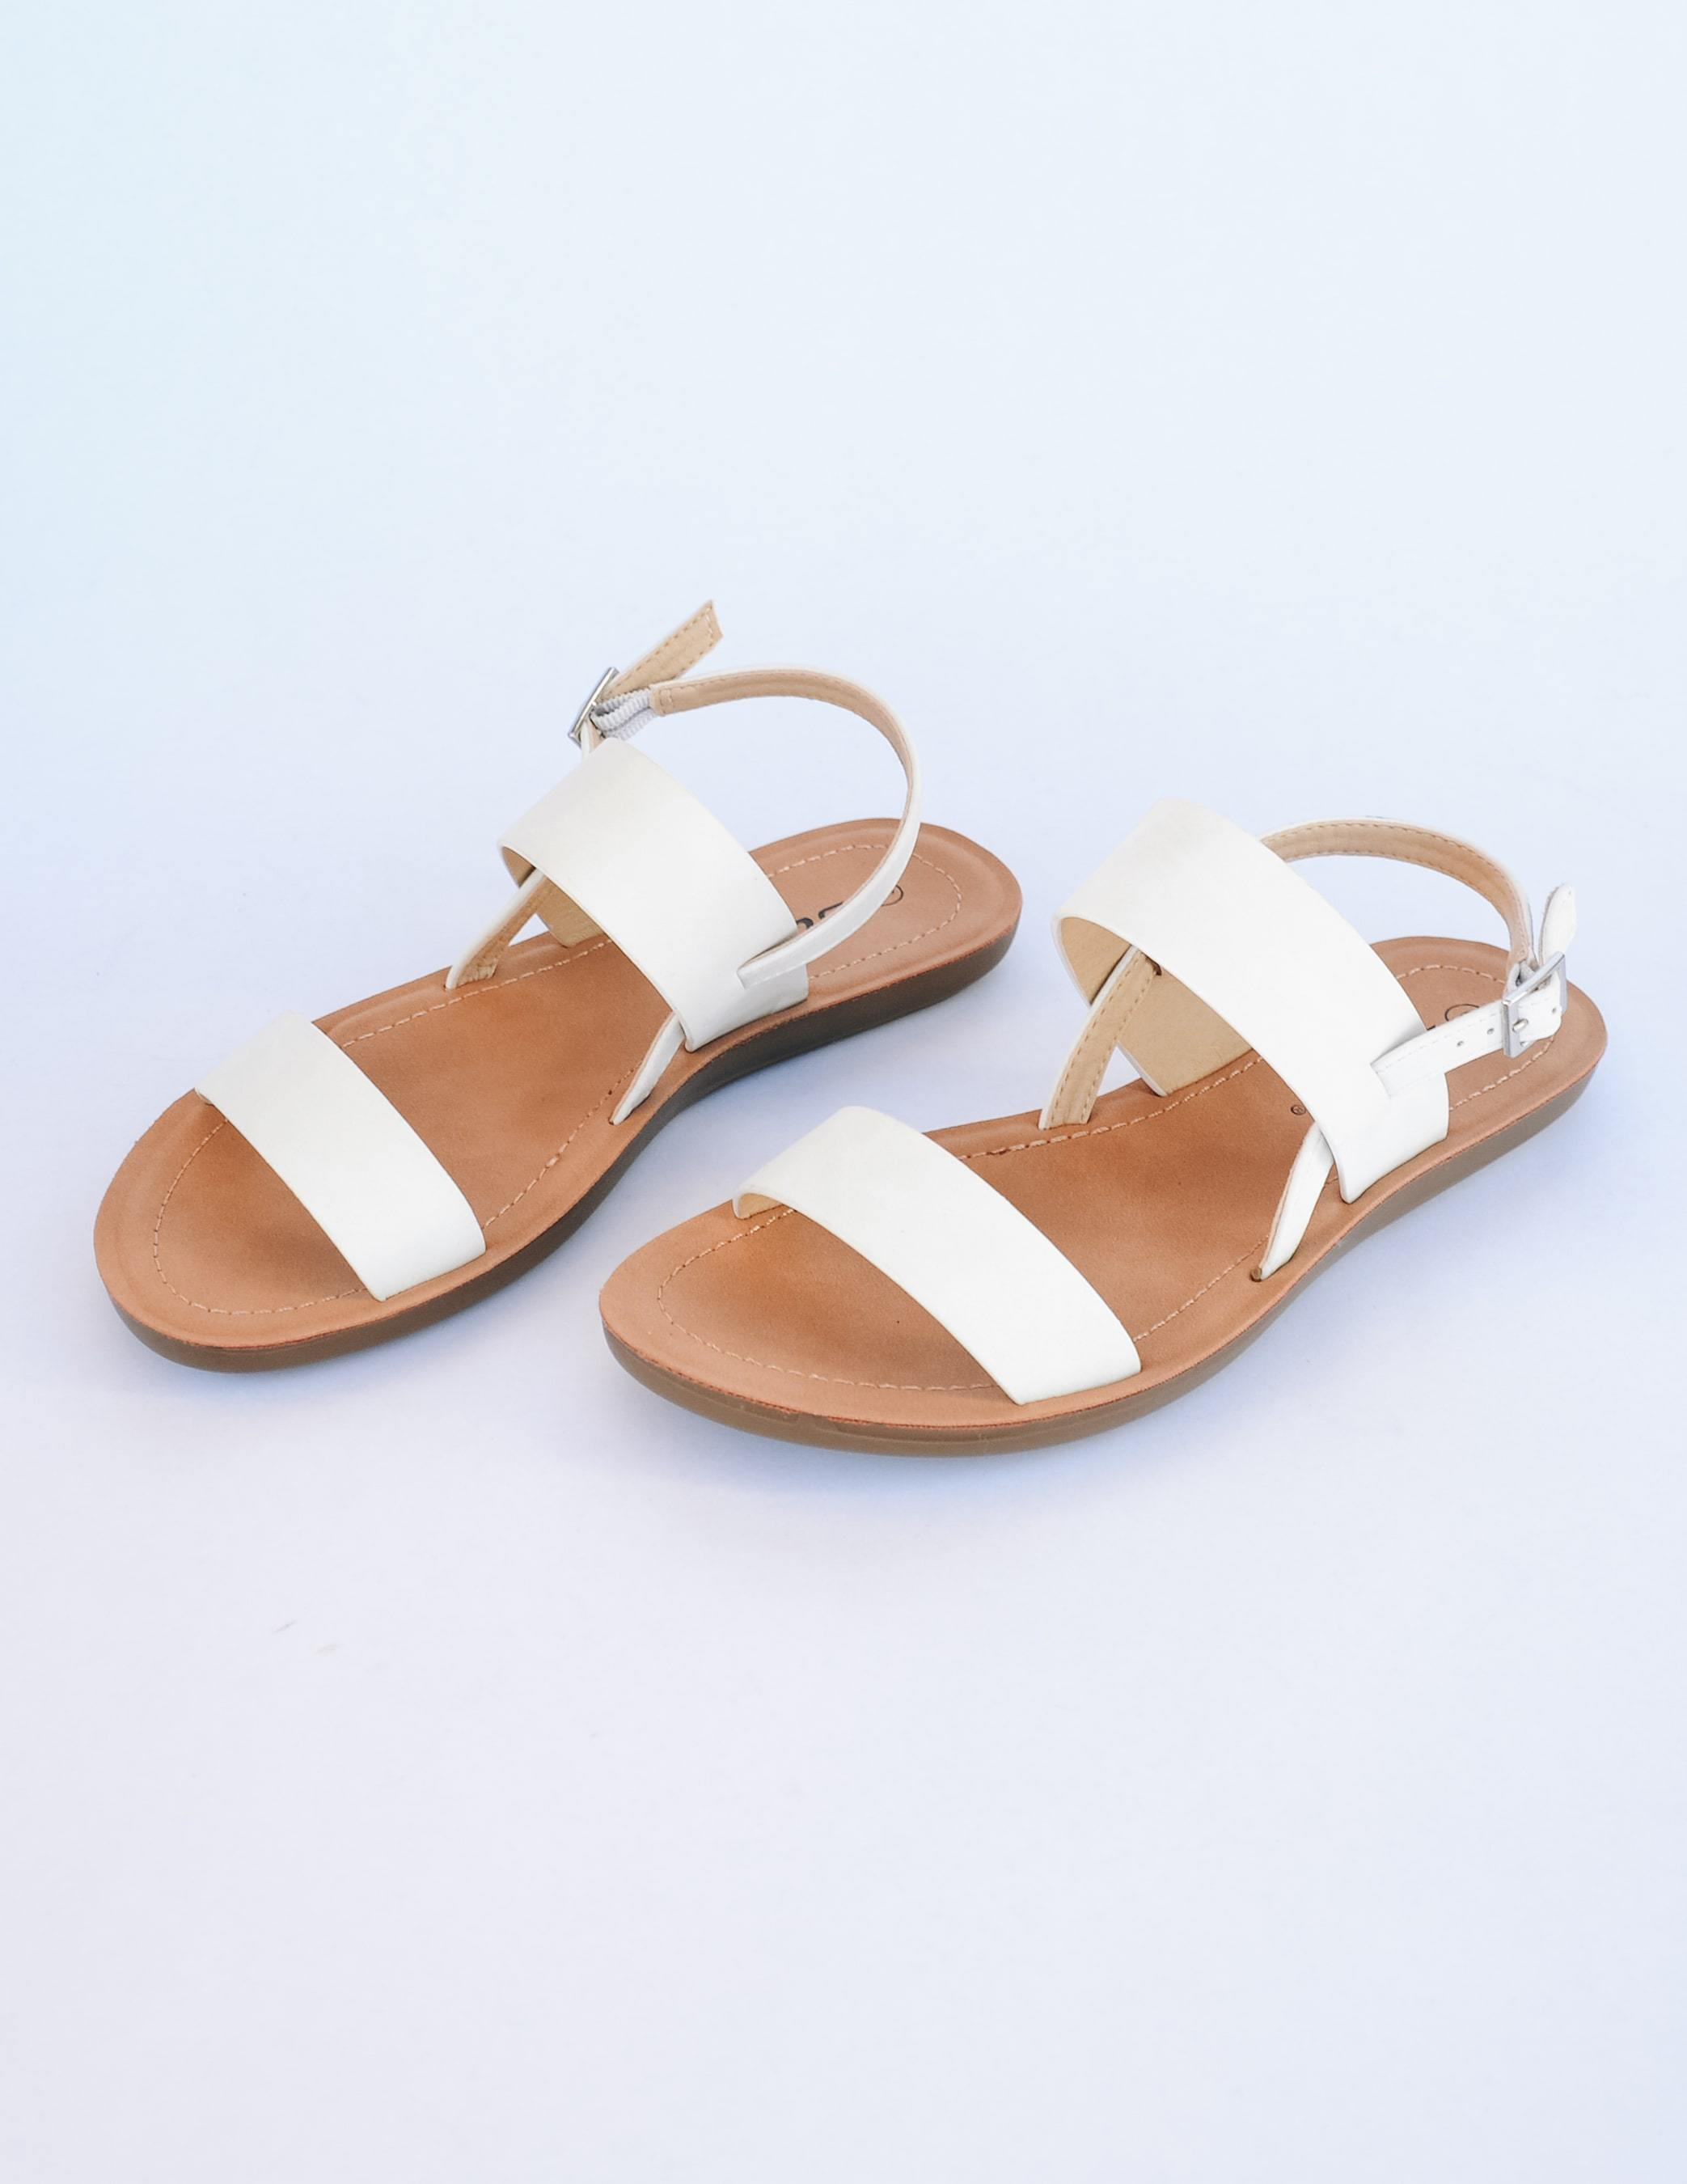 White strappy sandal with tan insole on white background - elle bleu